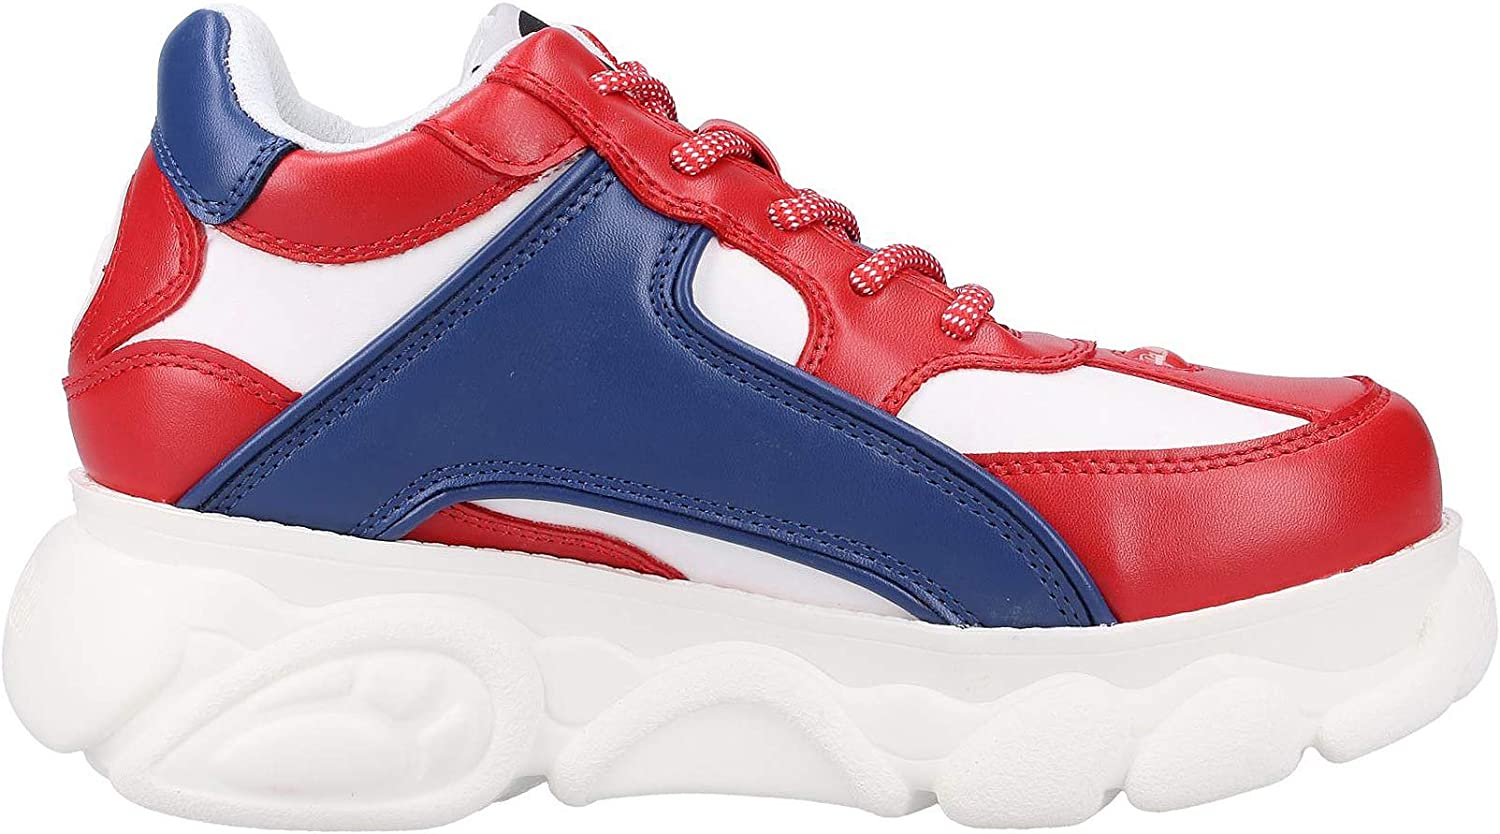 Buffalo Colby, Sneakers Basses Femme Multicolore Red Blue White 000